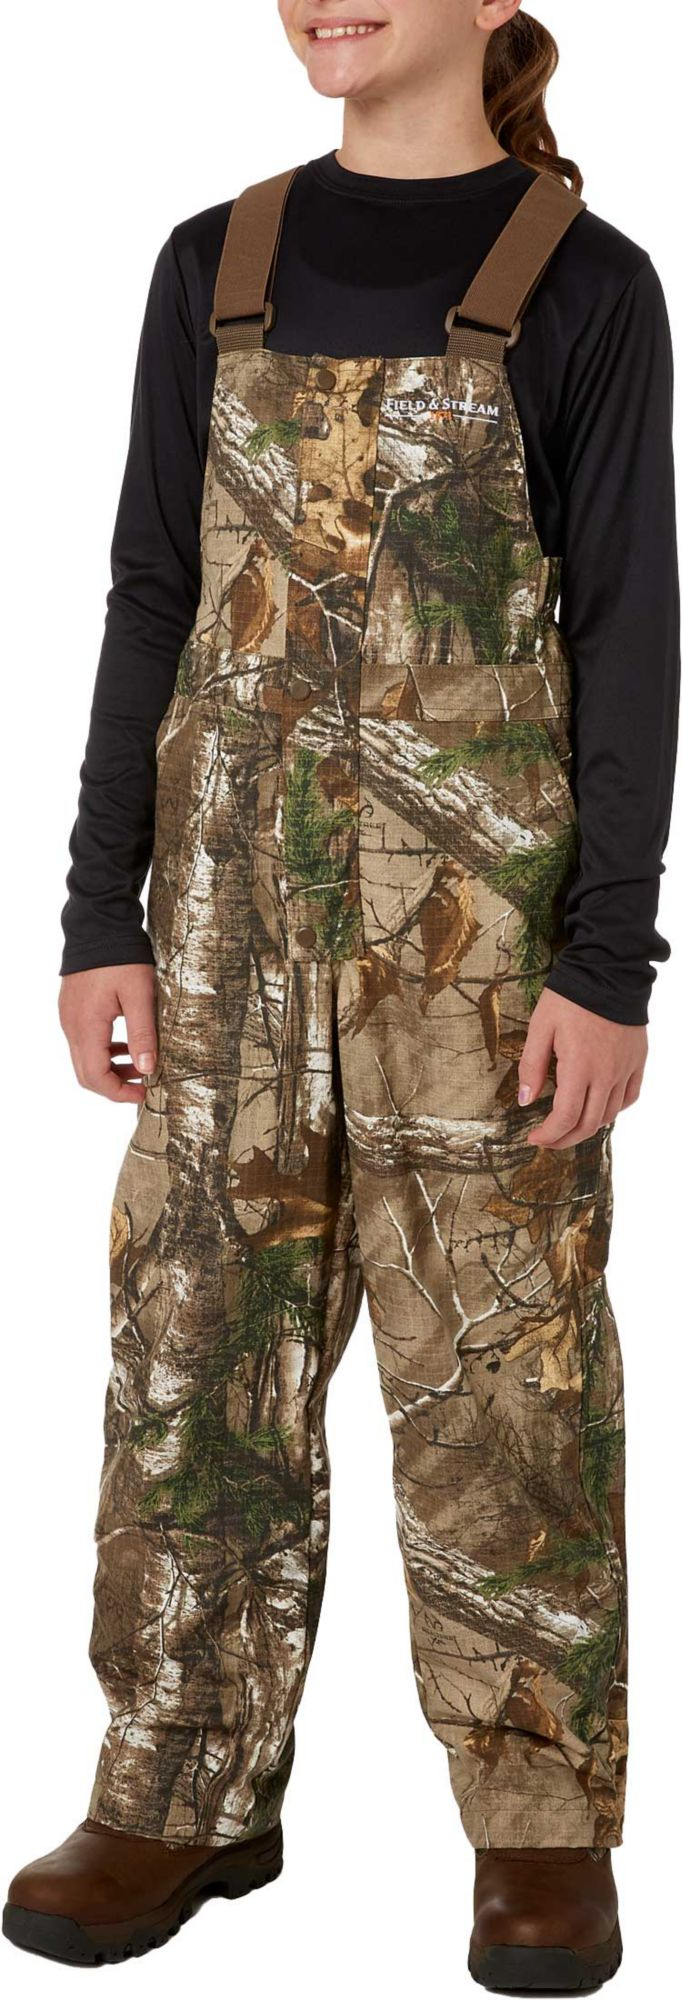 Field & Stream Youth Ripstop Hunting Bibs, Size: XL, Brown thumbnail